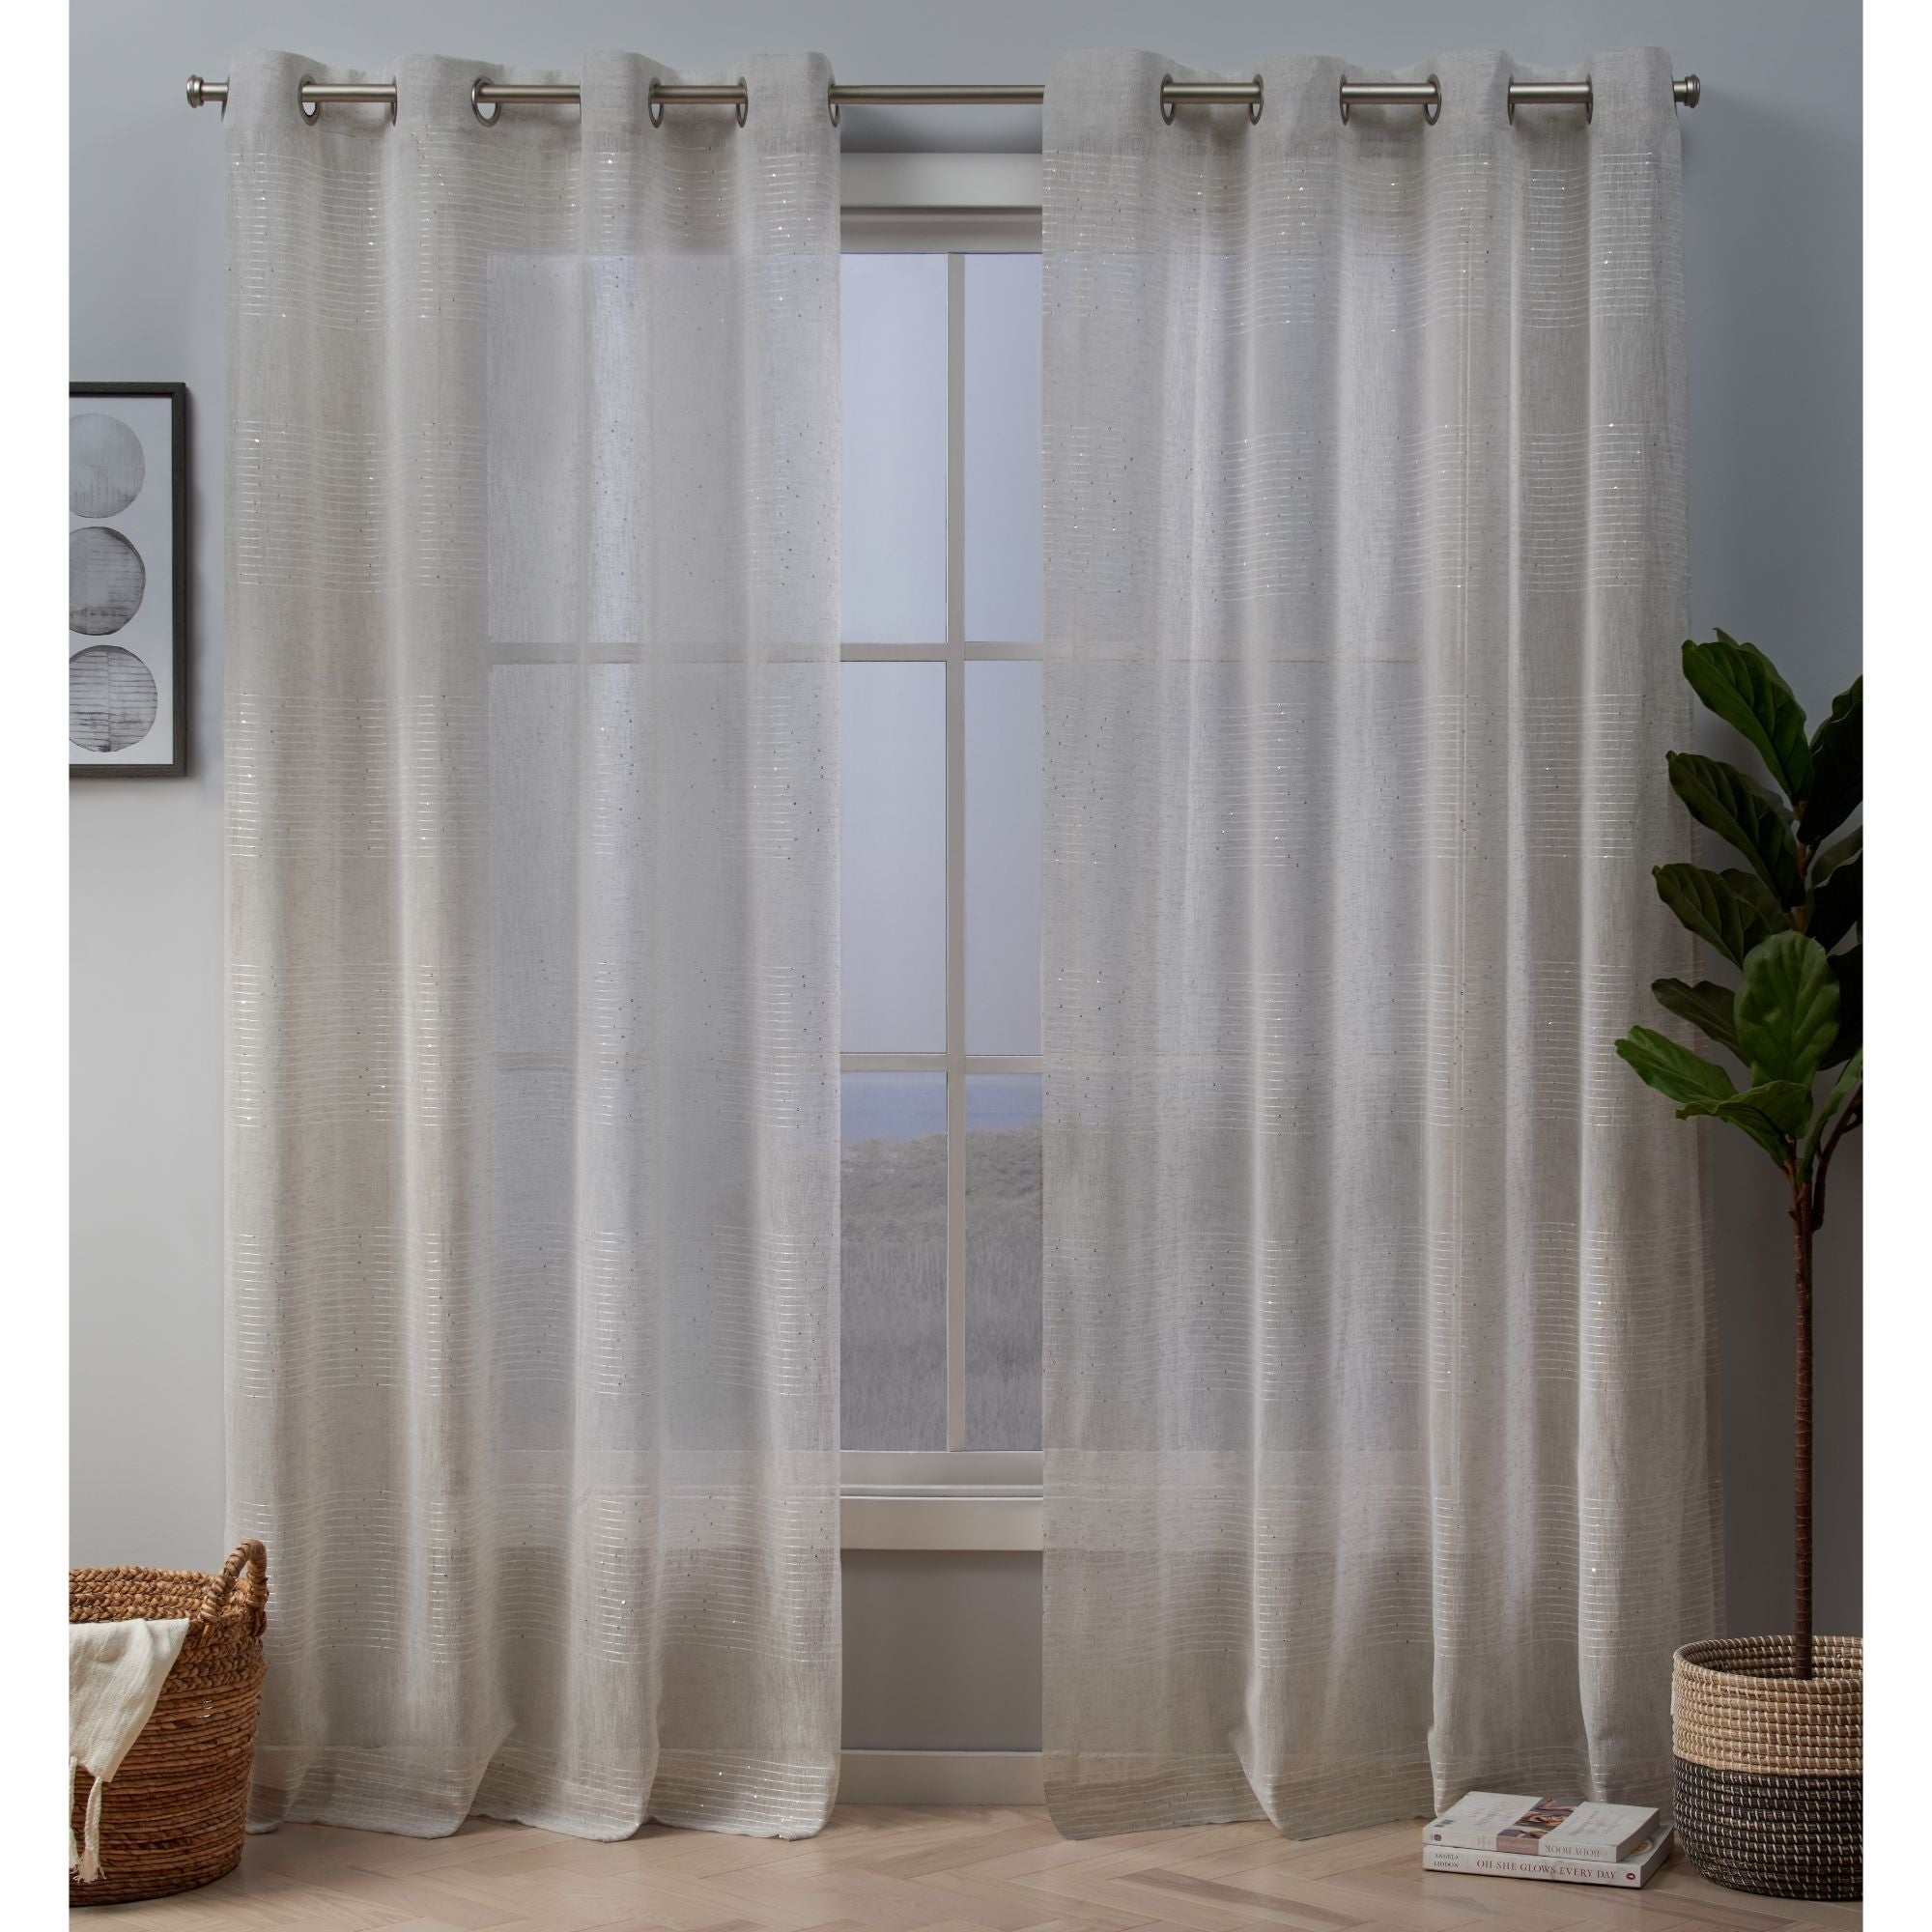 Silver Orchid Robey Embellished Sheer Grommet Top Curtain Panel Pair With Regard To Penny Sheer Grommet Top Curtain Panel Pairs (View 2 of 20)